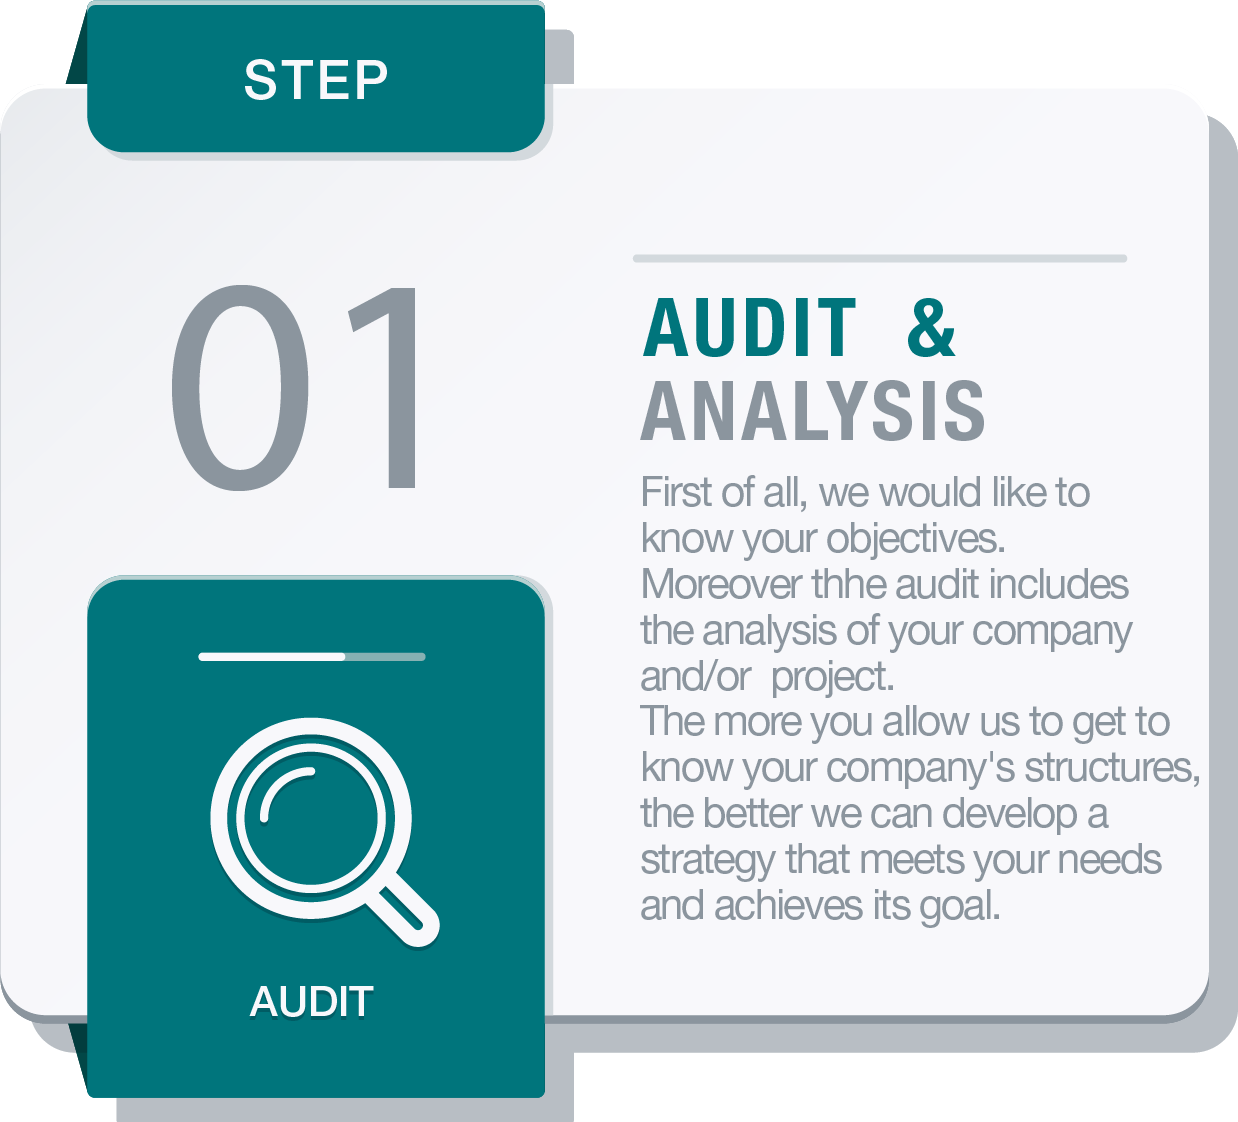 Audit & Analysis